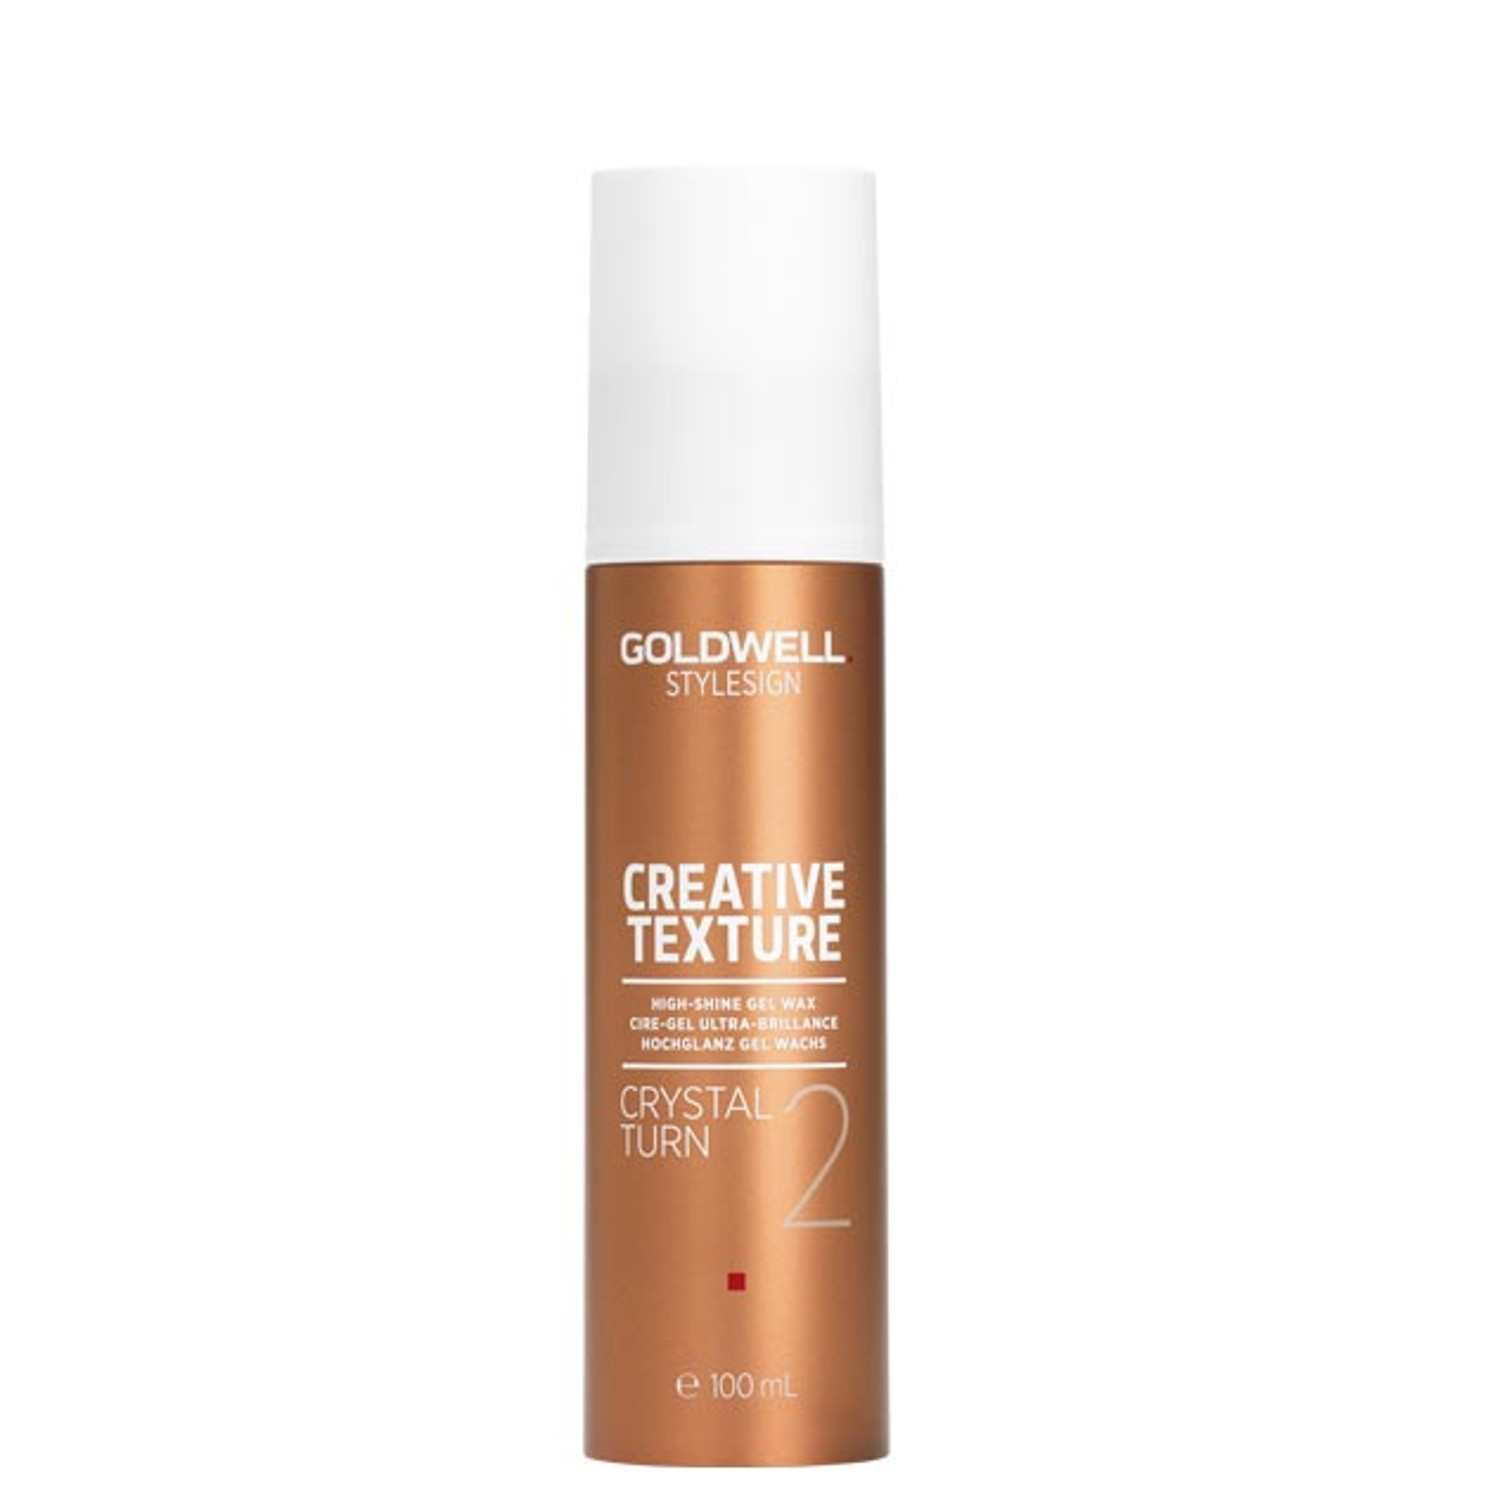 GOLDWELL Style Sign Creative Texture CRYSTAL TURN 100 ml